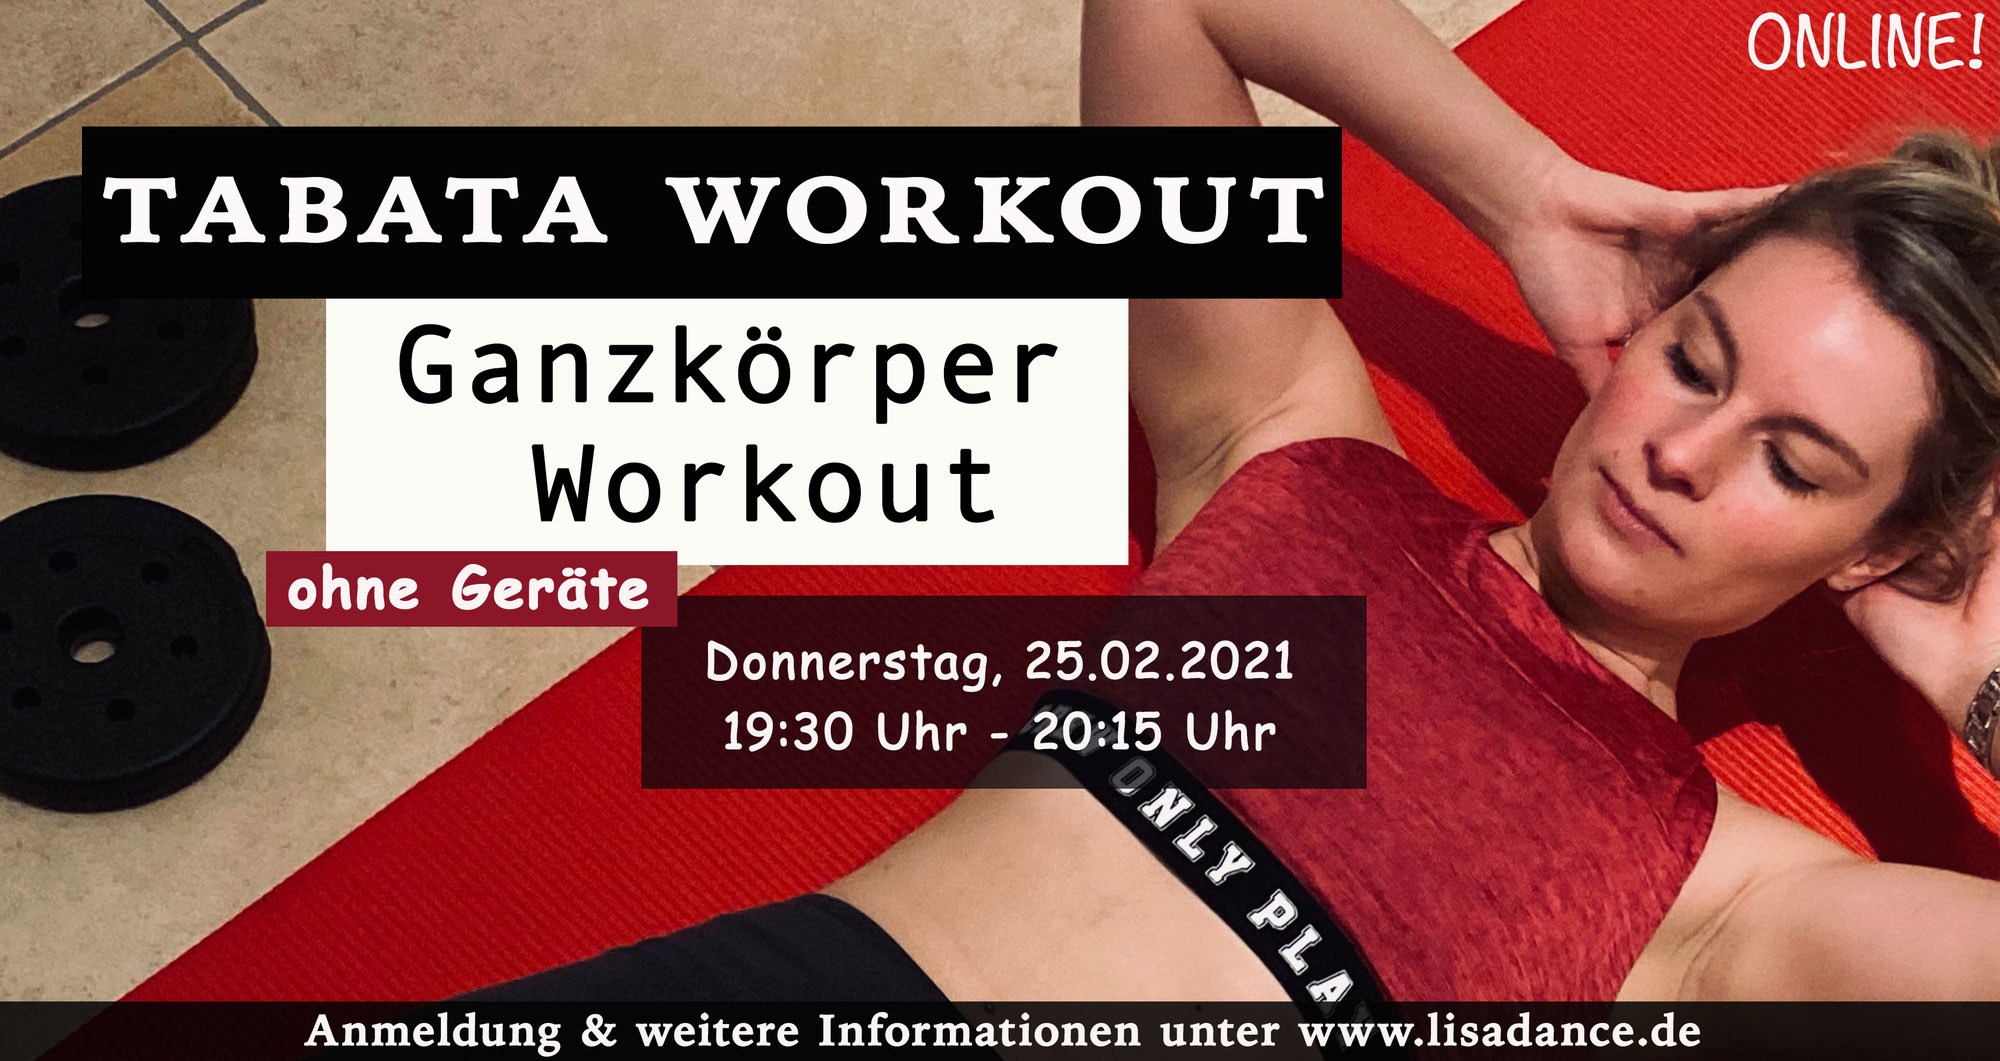 ONLINE - Tabata Workout